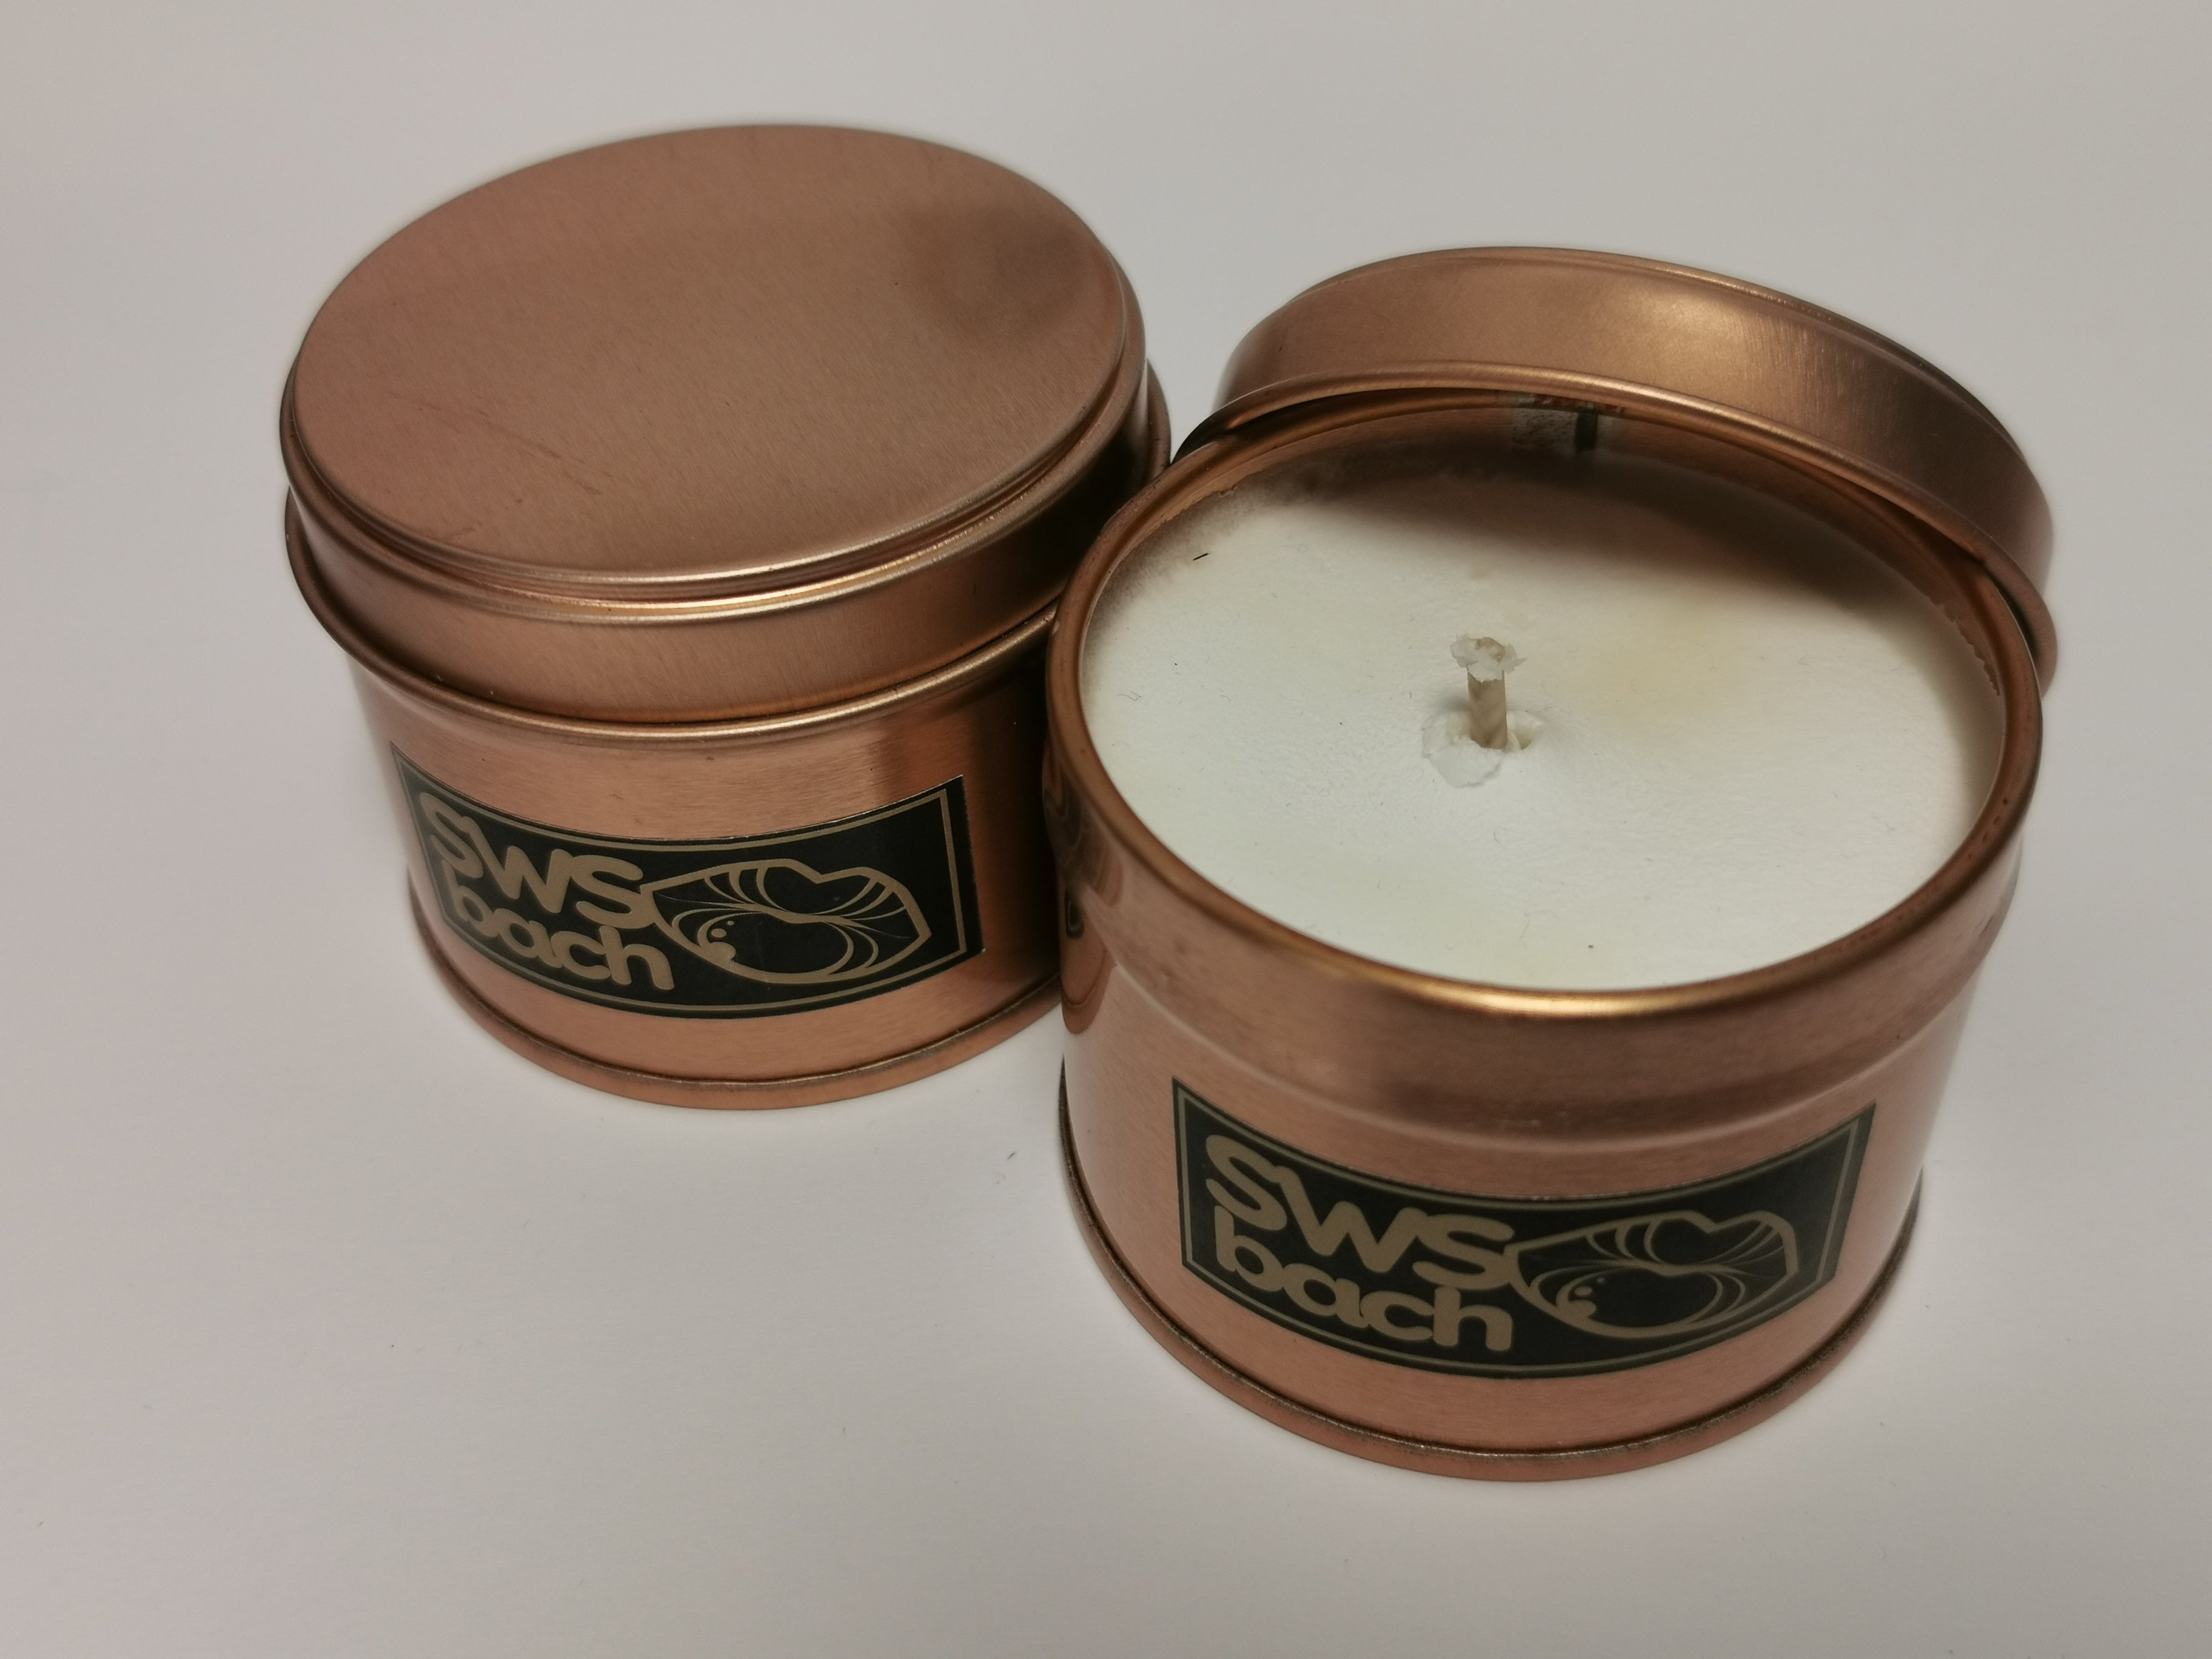 Luxury Candles Handmade in Wales